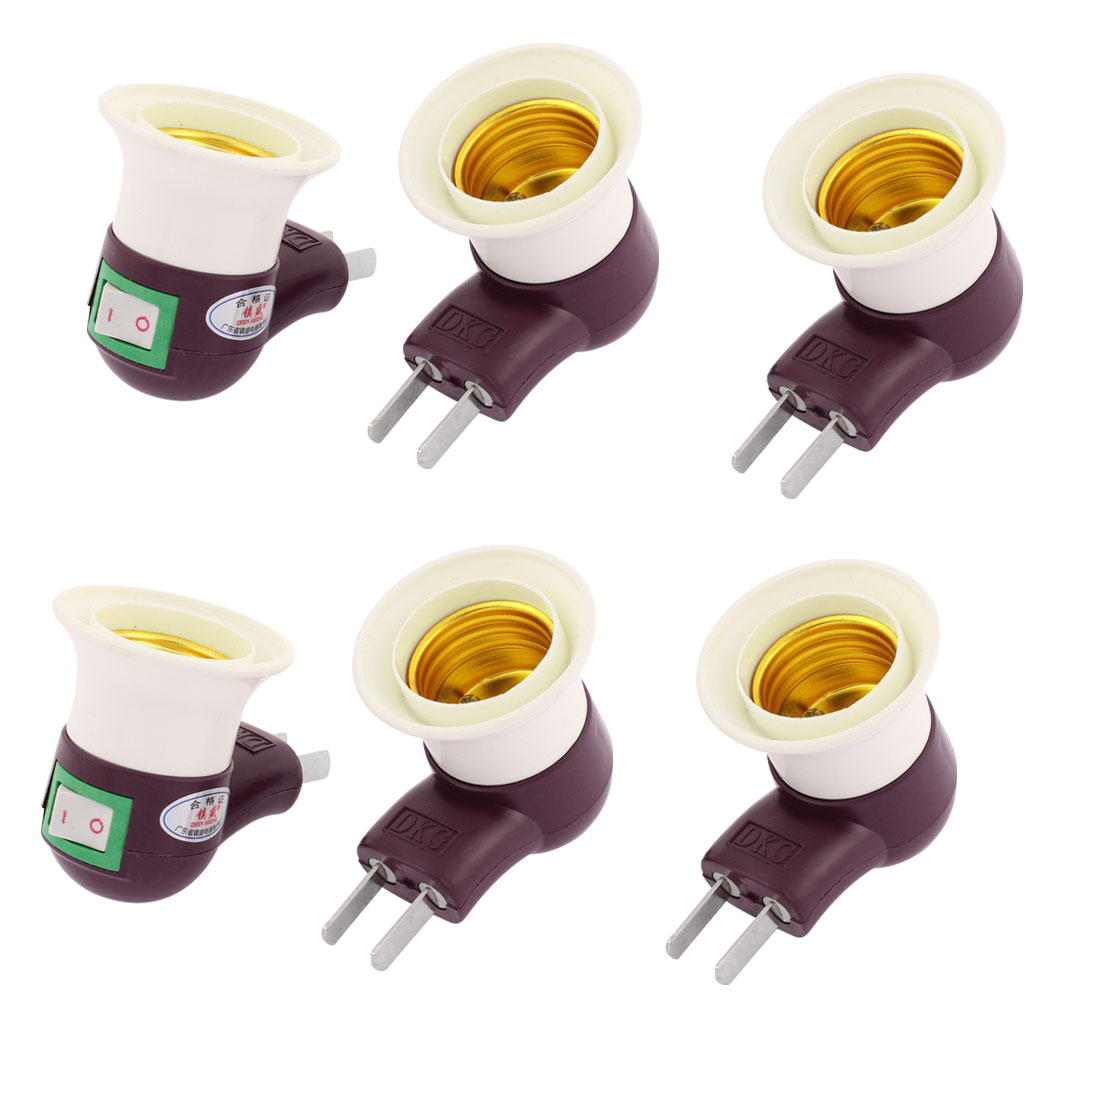 AU US Plug On/Off E27 Screw Light Bulb Base Lamp Holder Socket Adapter 6 Pcs